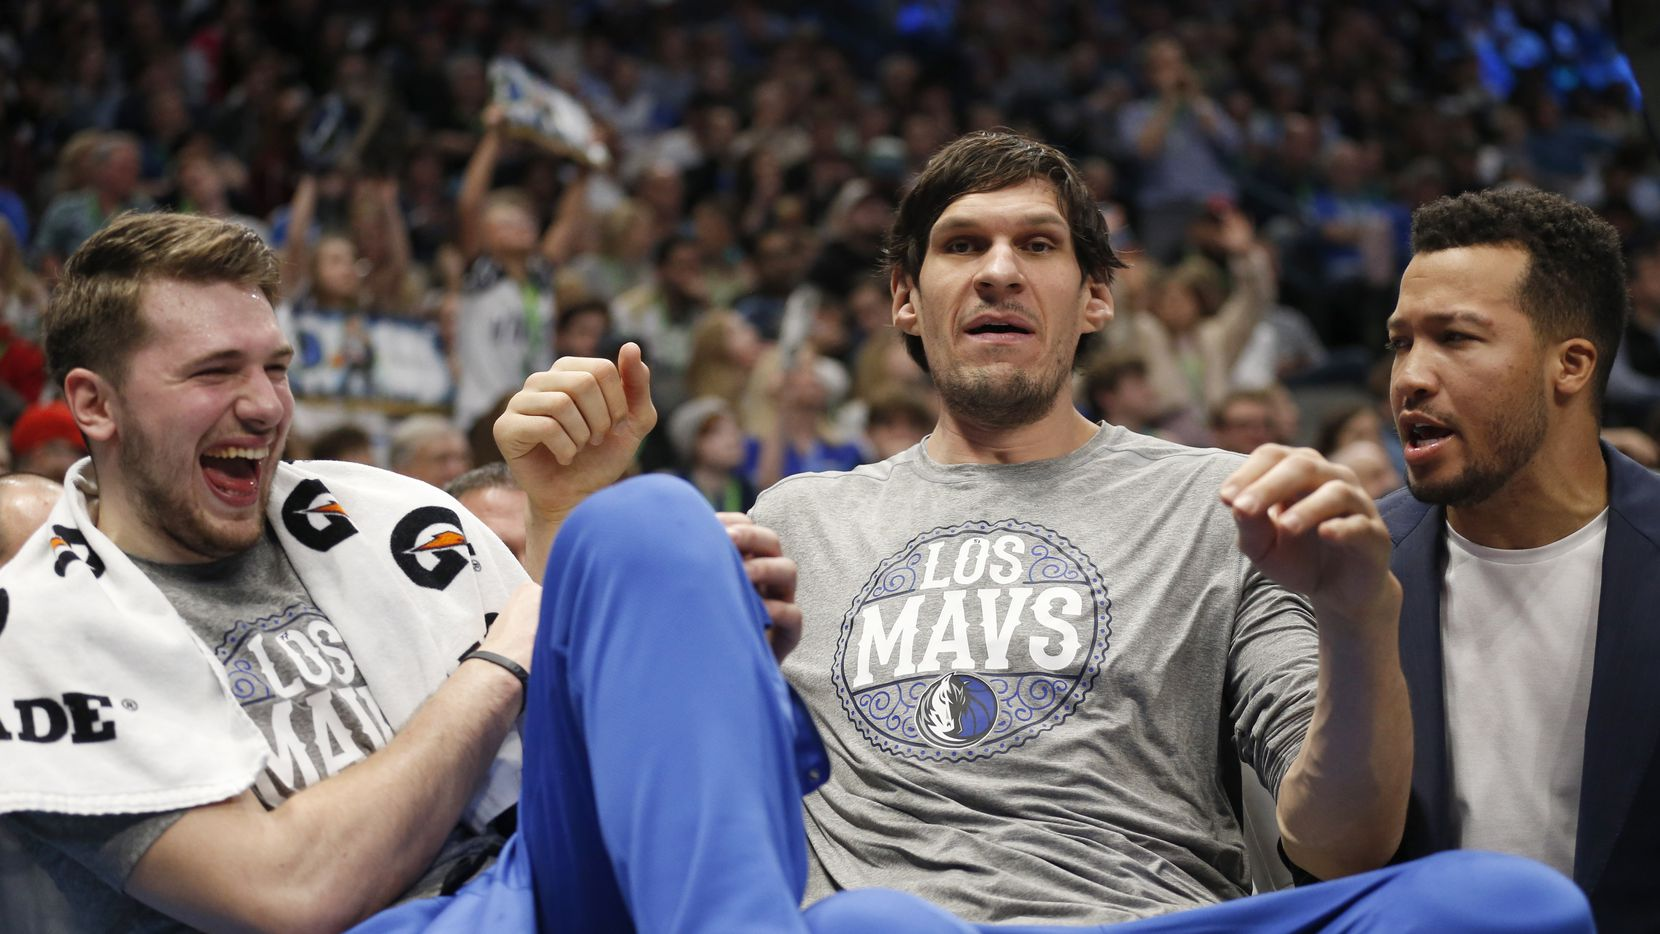 Dallas Mavericks center Boban Marjanovic (51) separates Dallas Mavericks guard Luka Doncic (77) and Dallas Mavericks guard Jalen Brunson (13) in a game against the Memphis Grizzlies during the first half of play at American Airlines Center in Dallas on Friday, March 6, 2020.